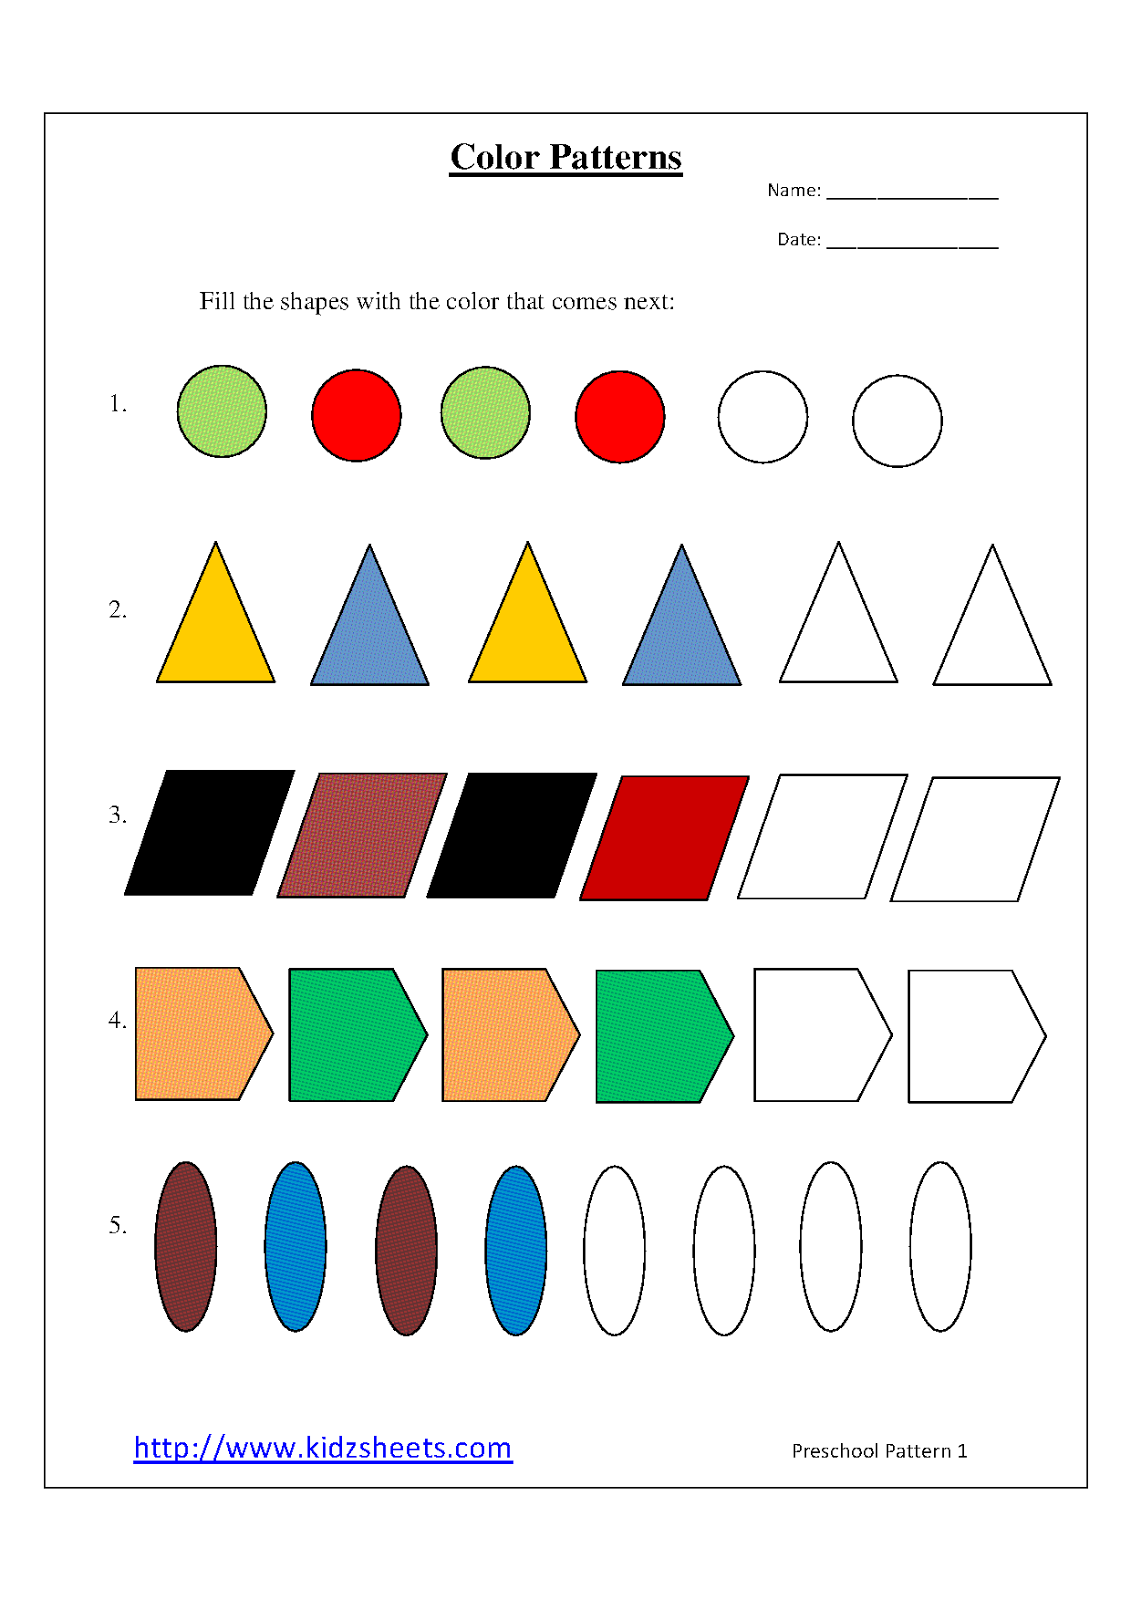 hight resolution of Kidz Worksheets: Preschool Color Patterns Worksheet1